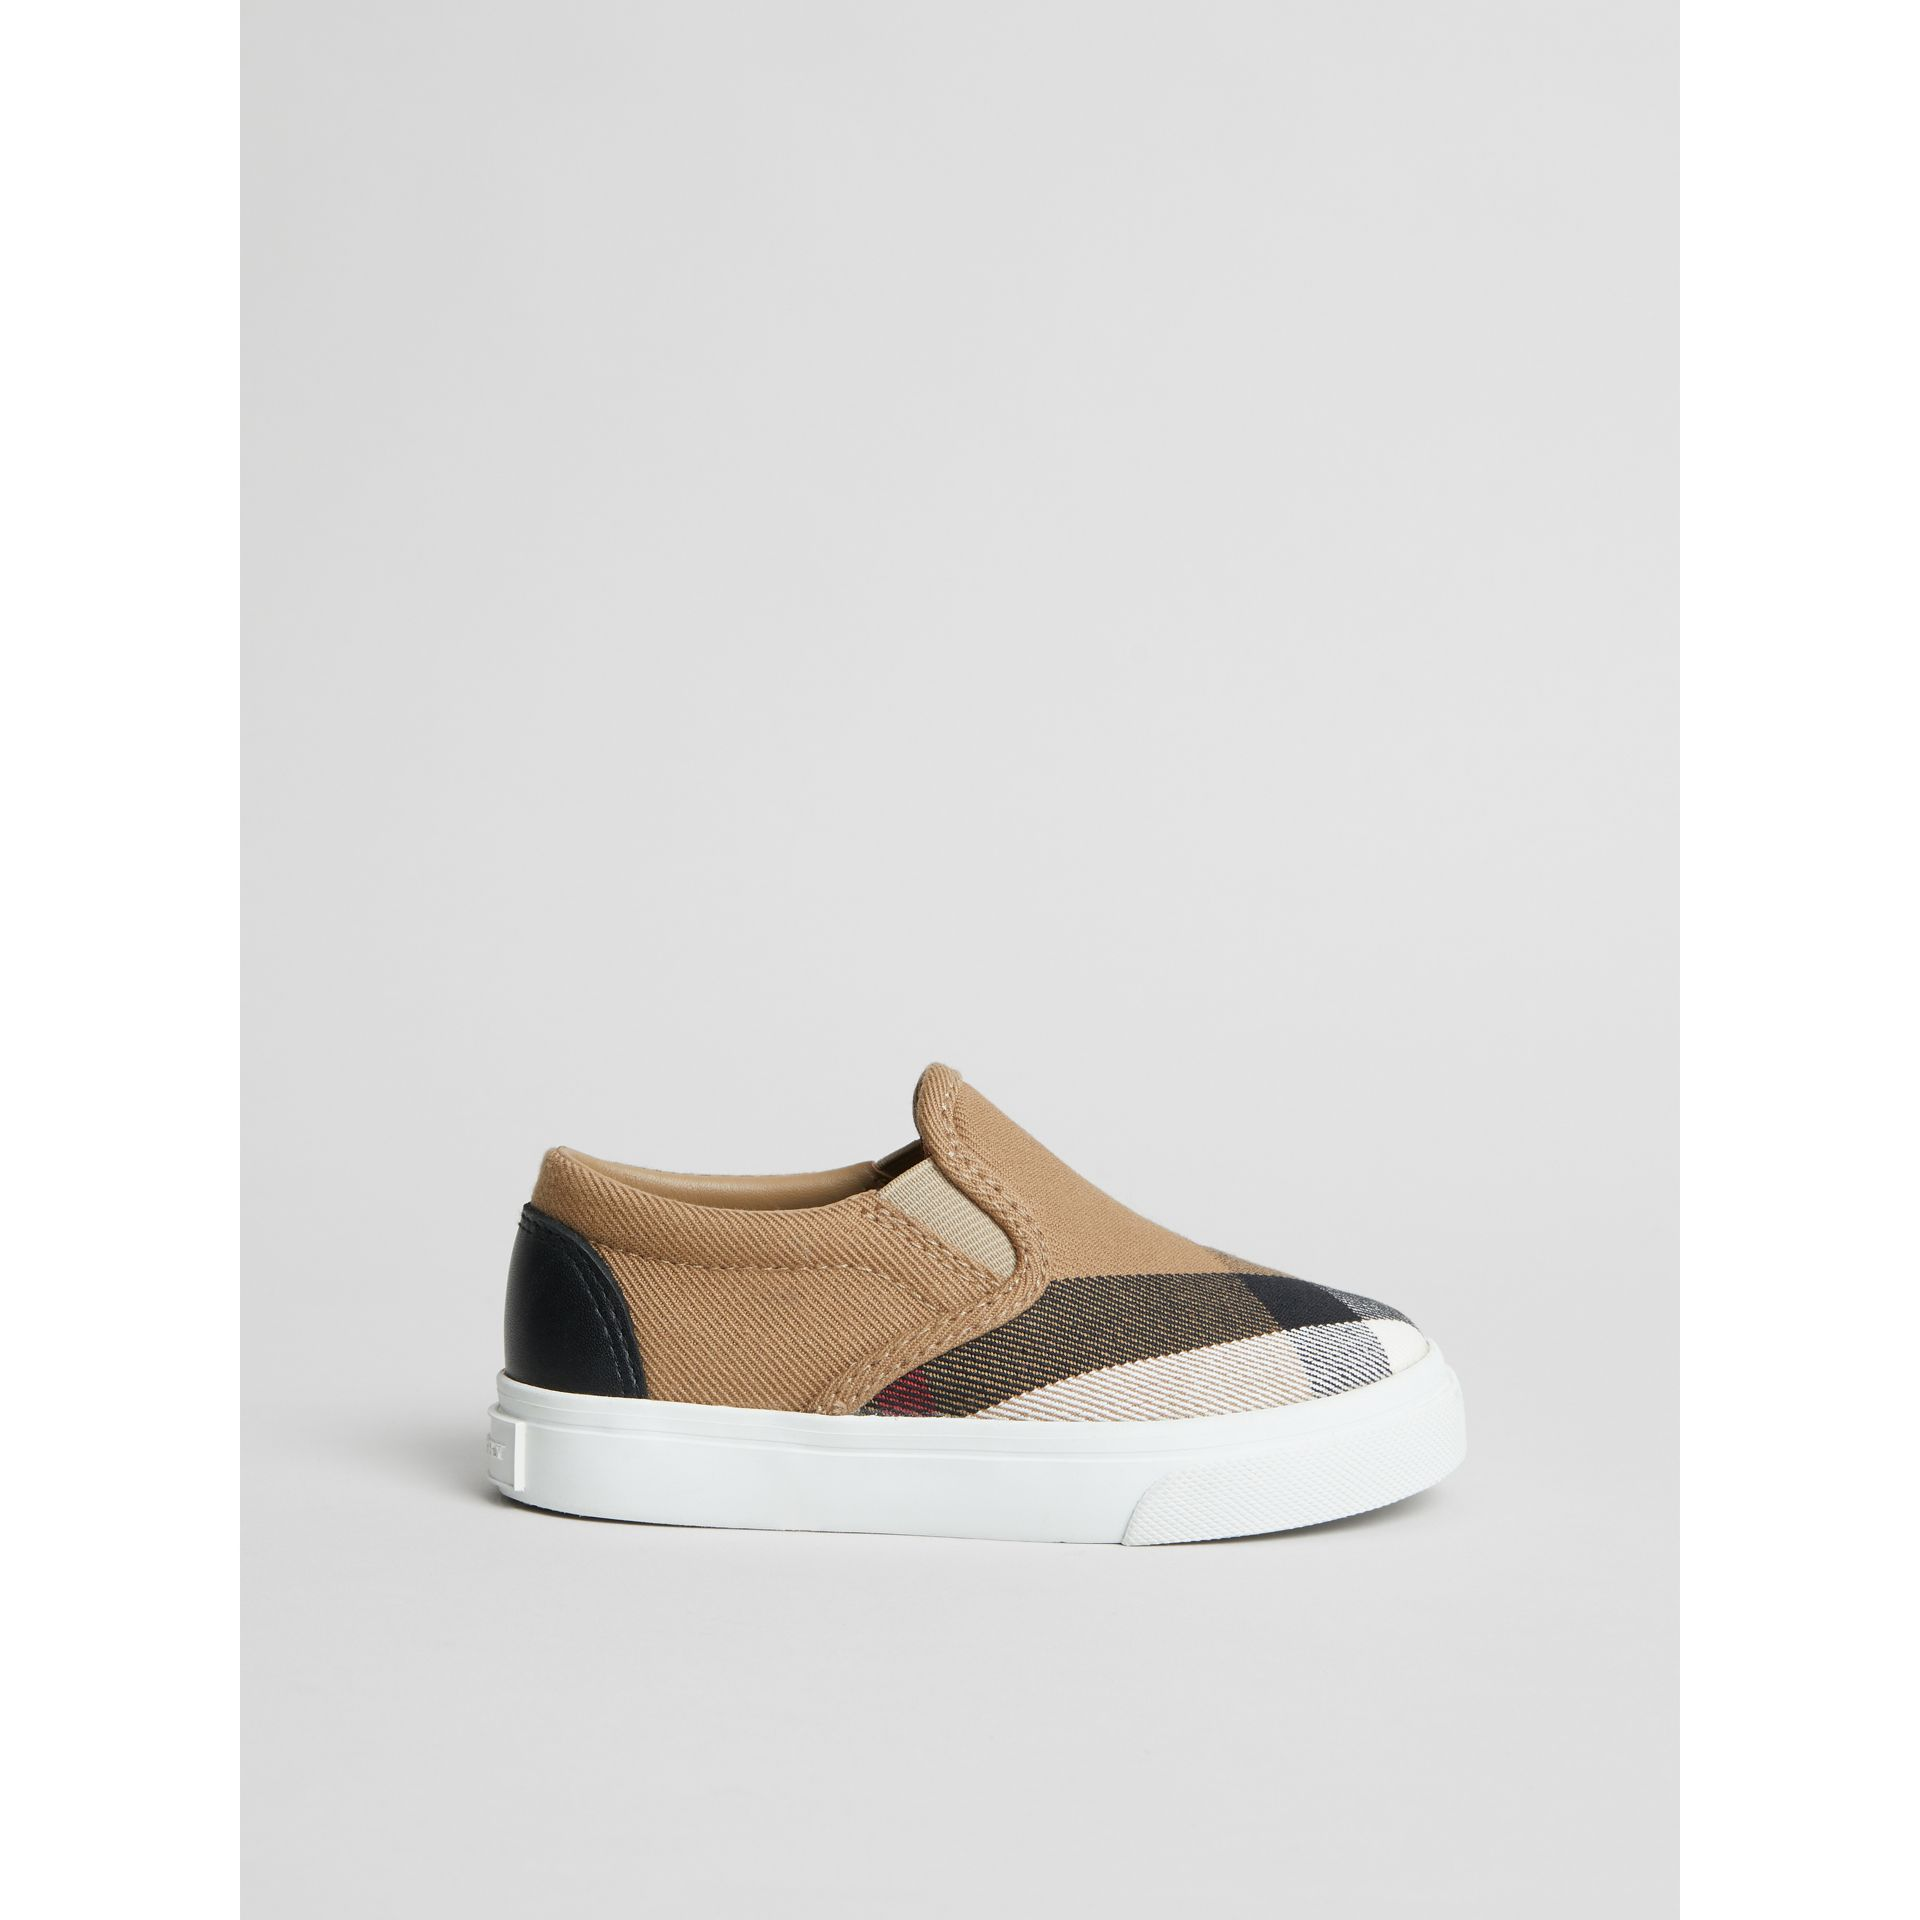 House Check and Leather Slip-on Sneakers in Classic/optic White | Burberry United States - gallery image 3